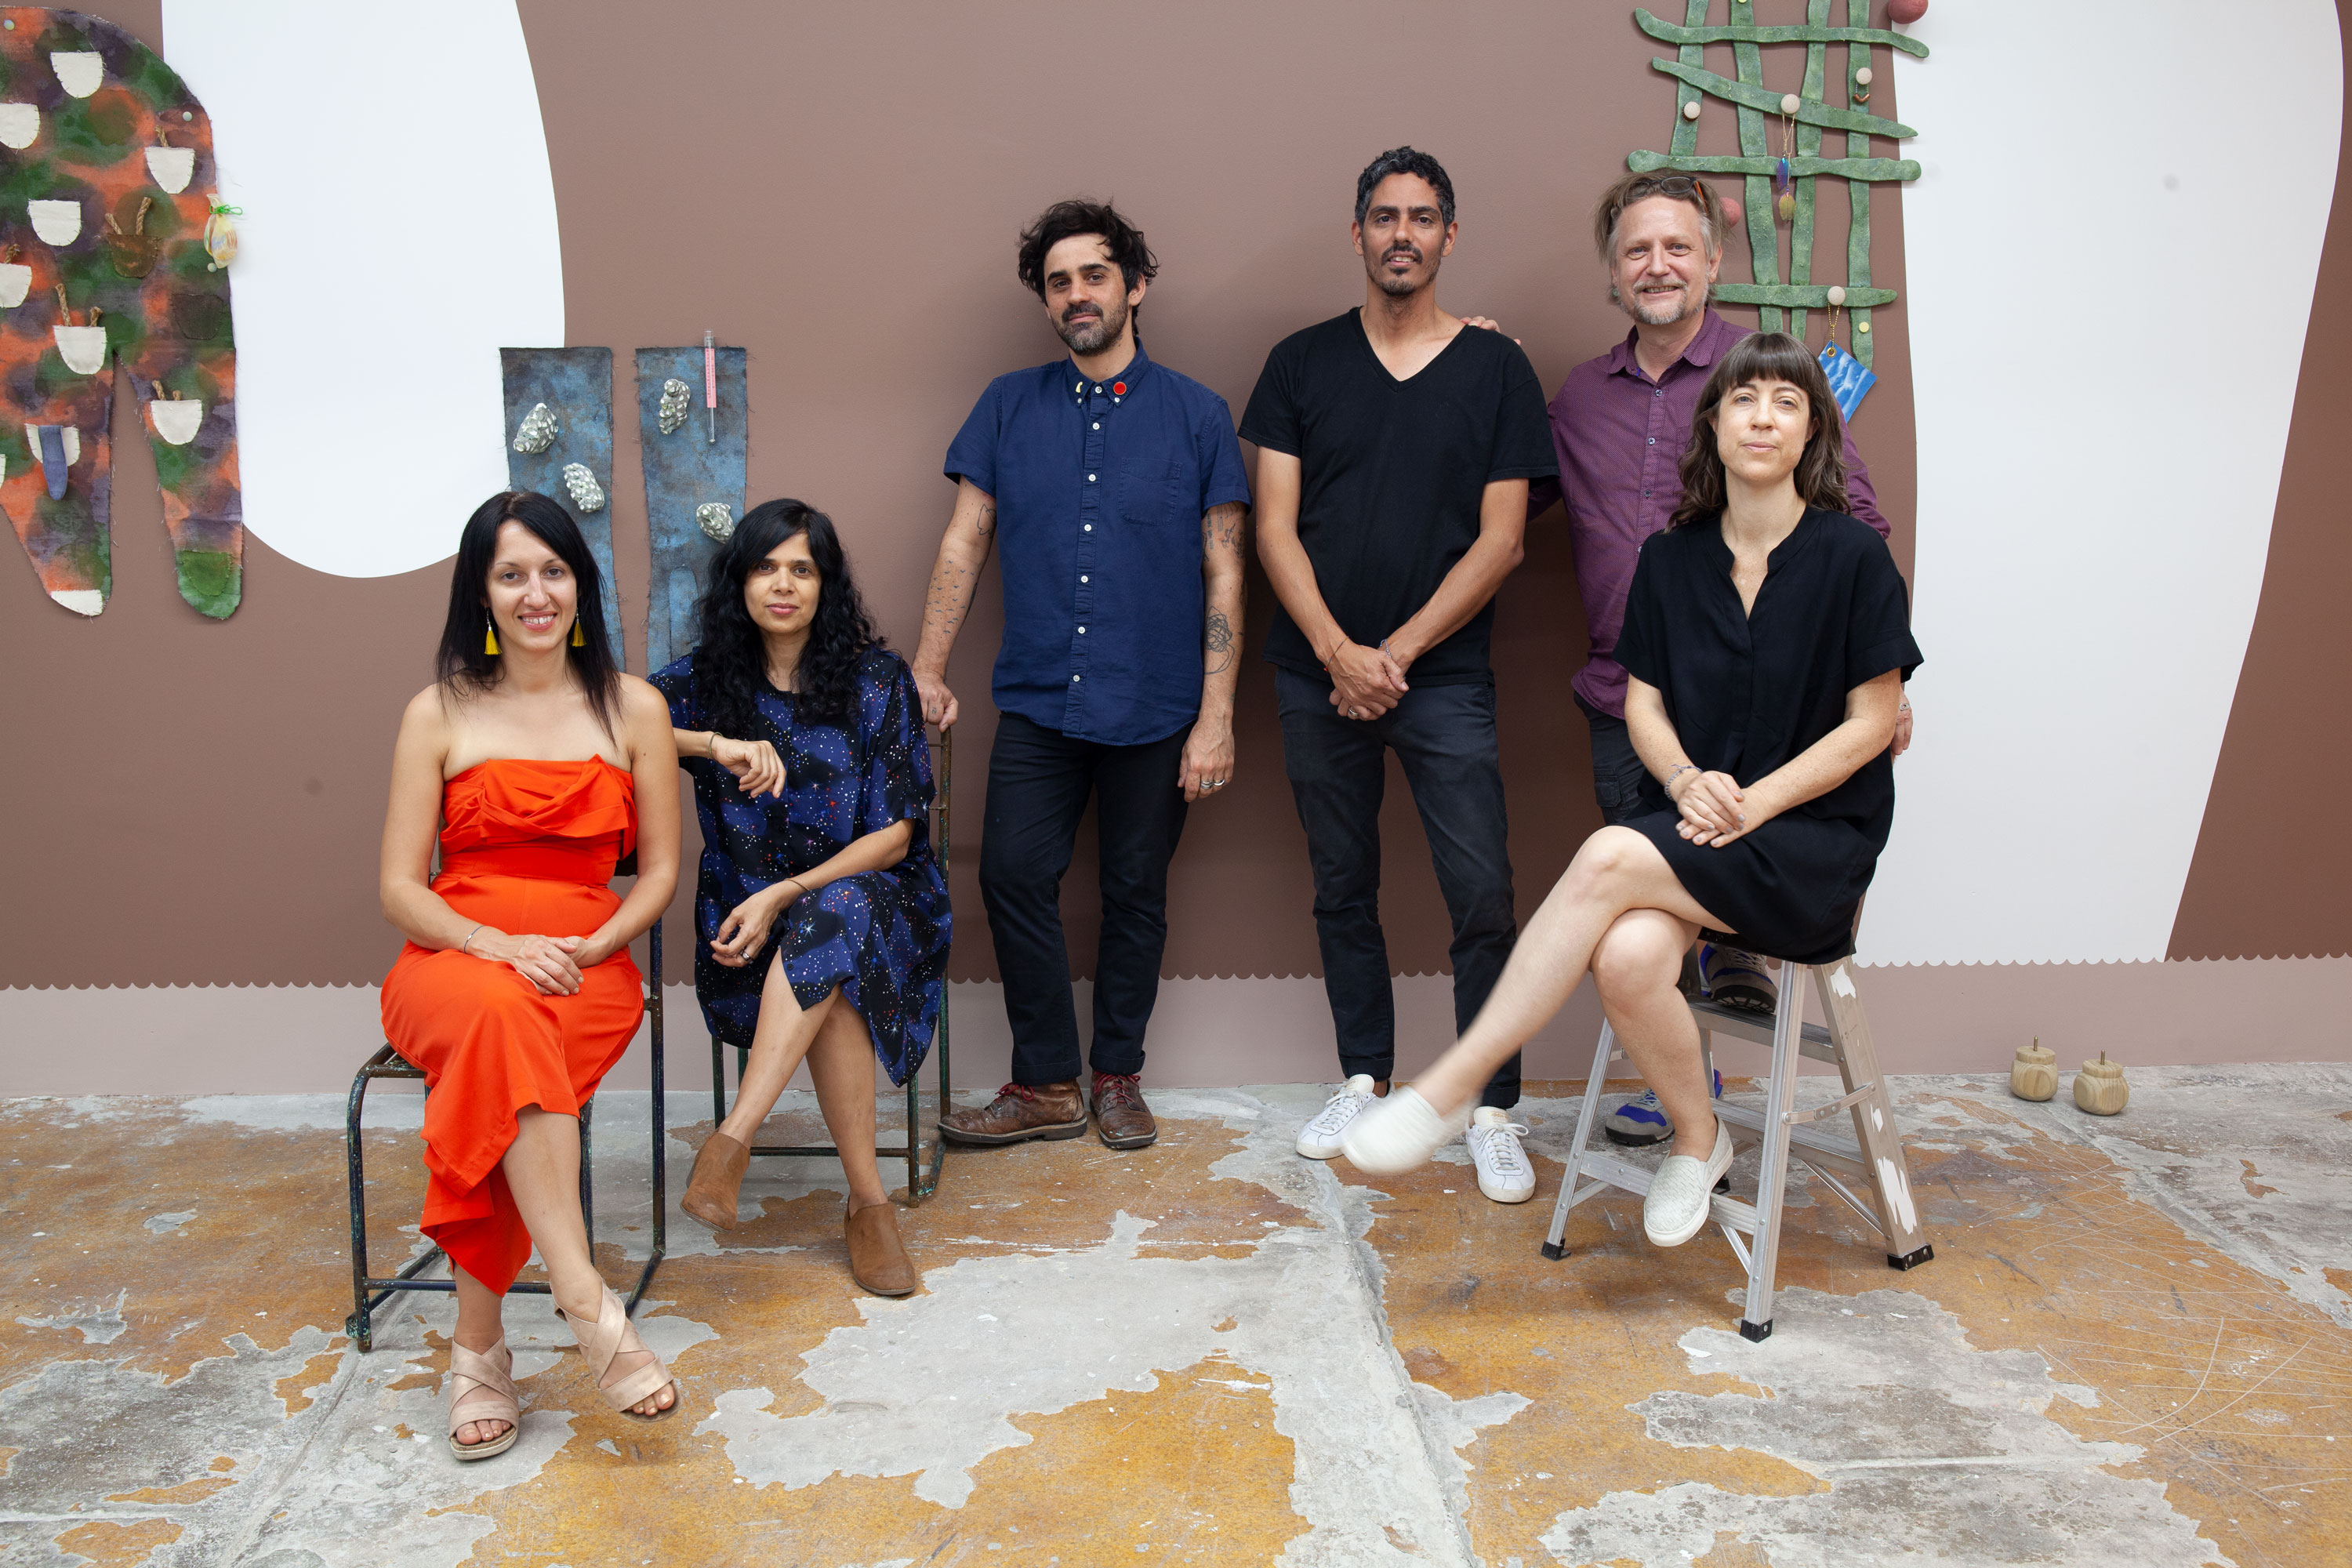 creative placemaking dimensions variable miami